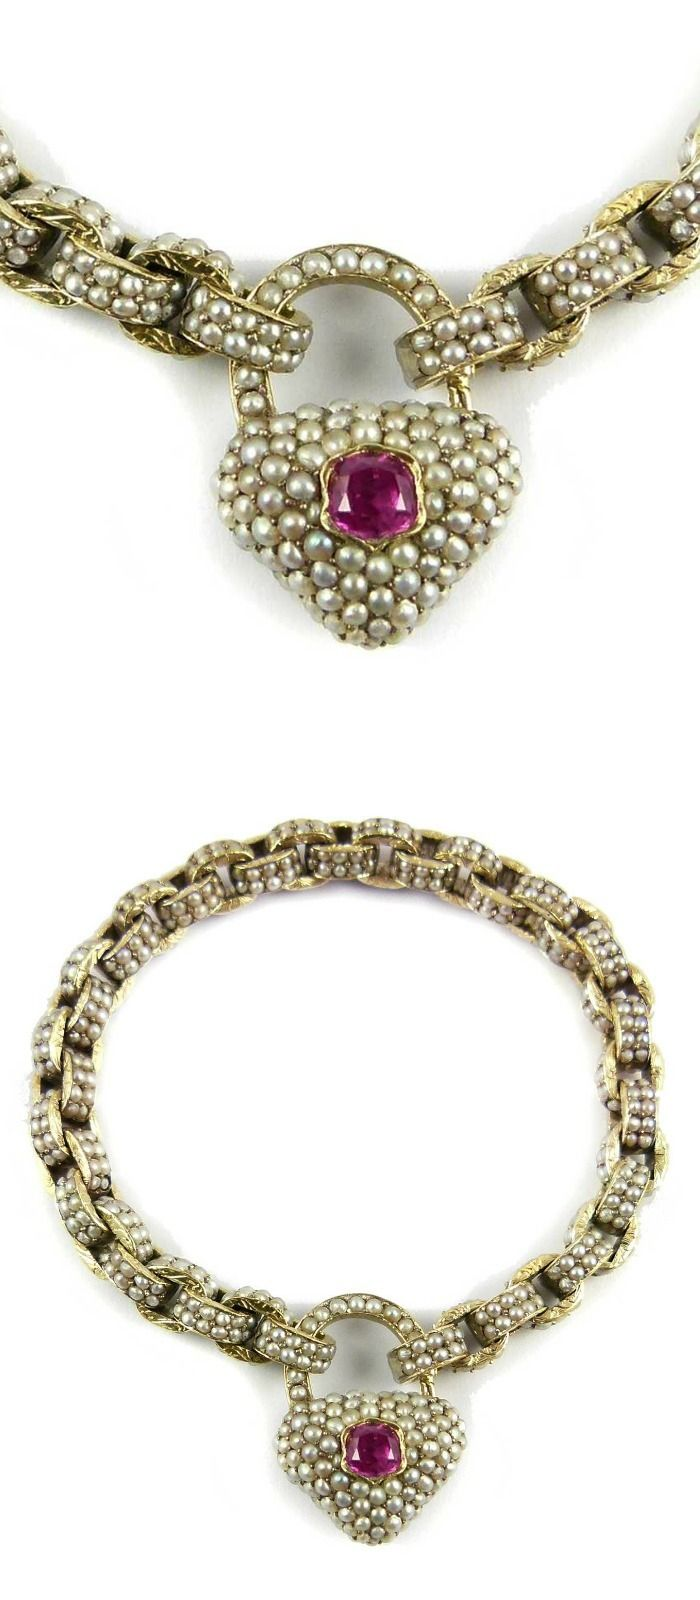 19th Century Seed Pearl Chain Bracelet And Heart Locket Clasp With Ruby,  French C